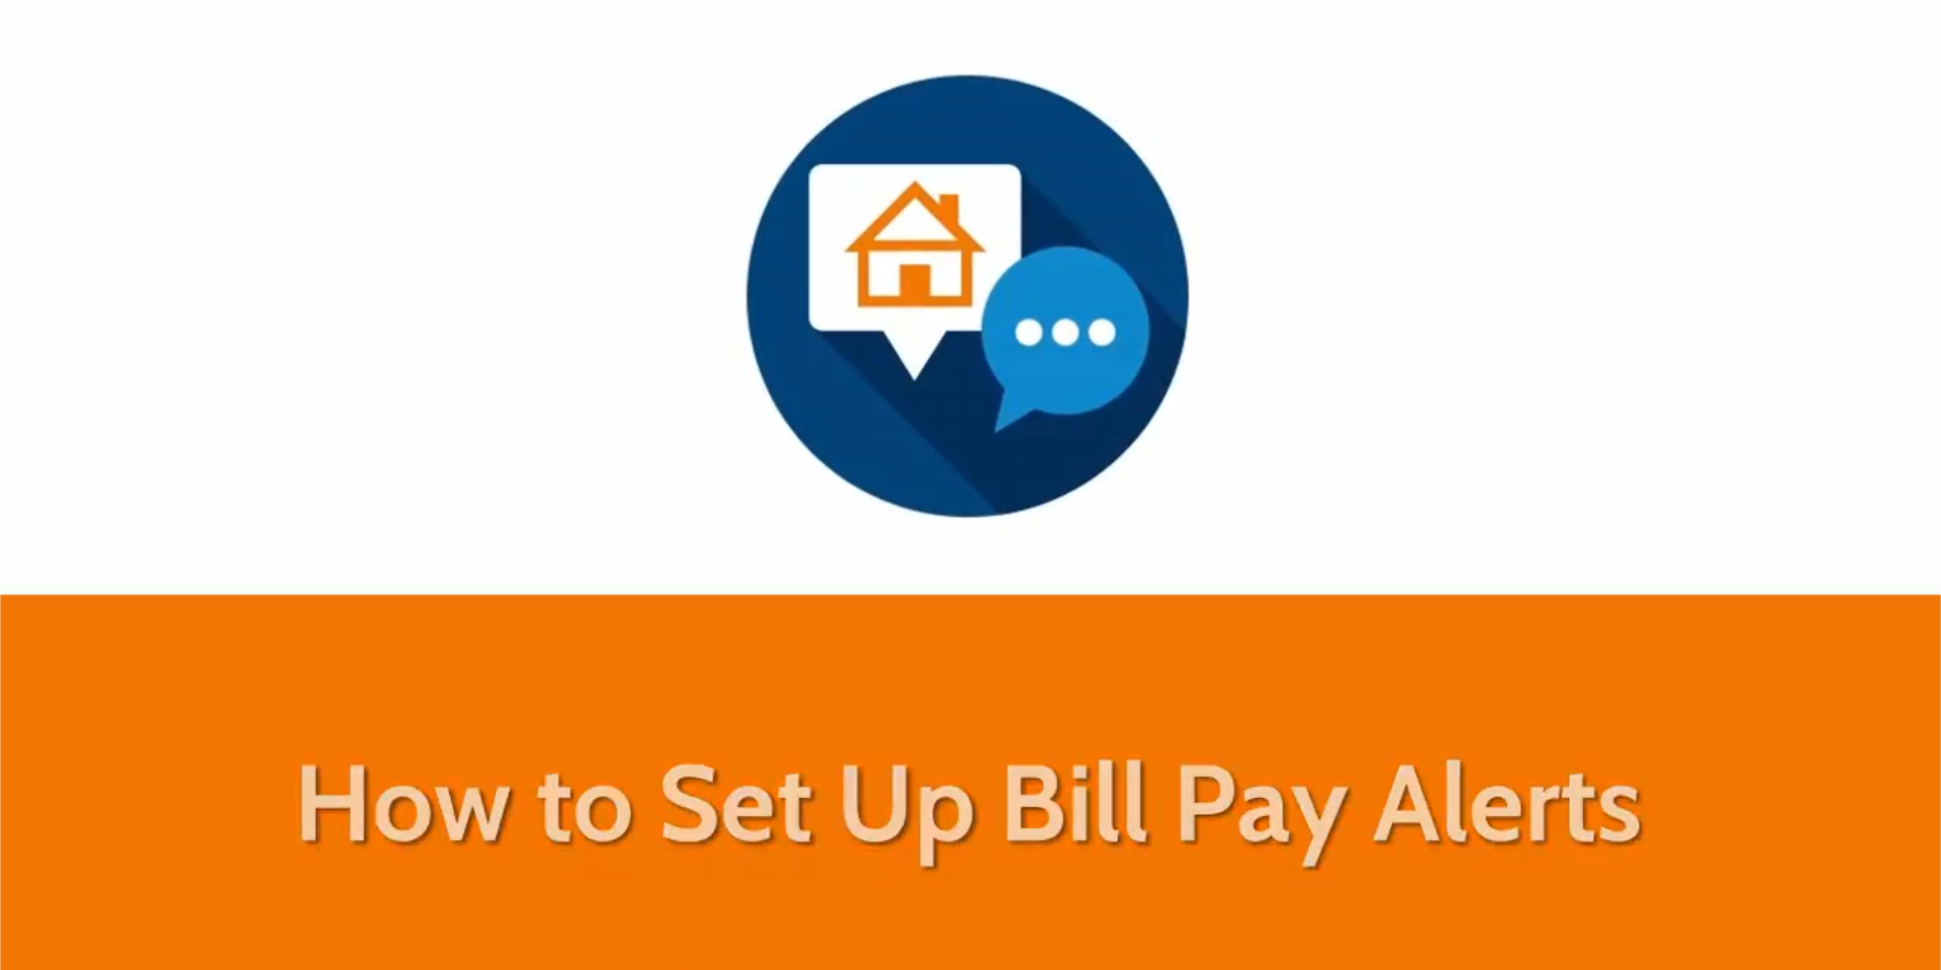 Bill Pay Alerts